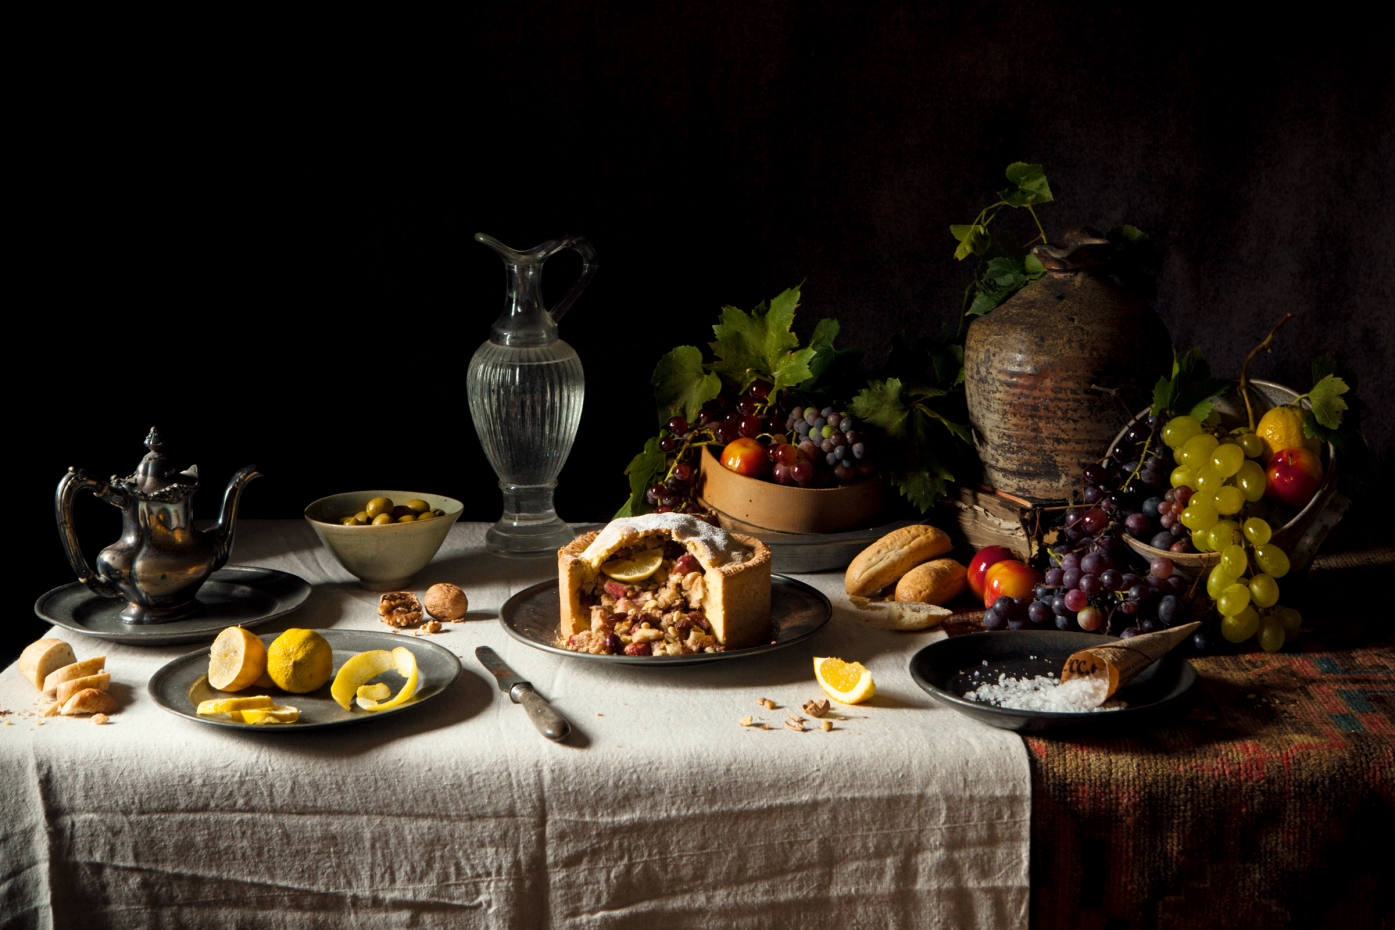 Eat well this season with Bill Knott's favourite festive picks